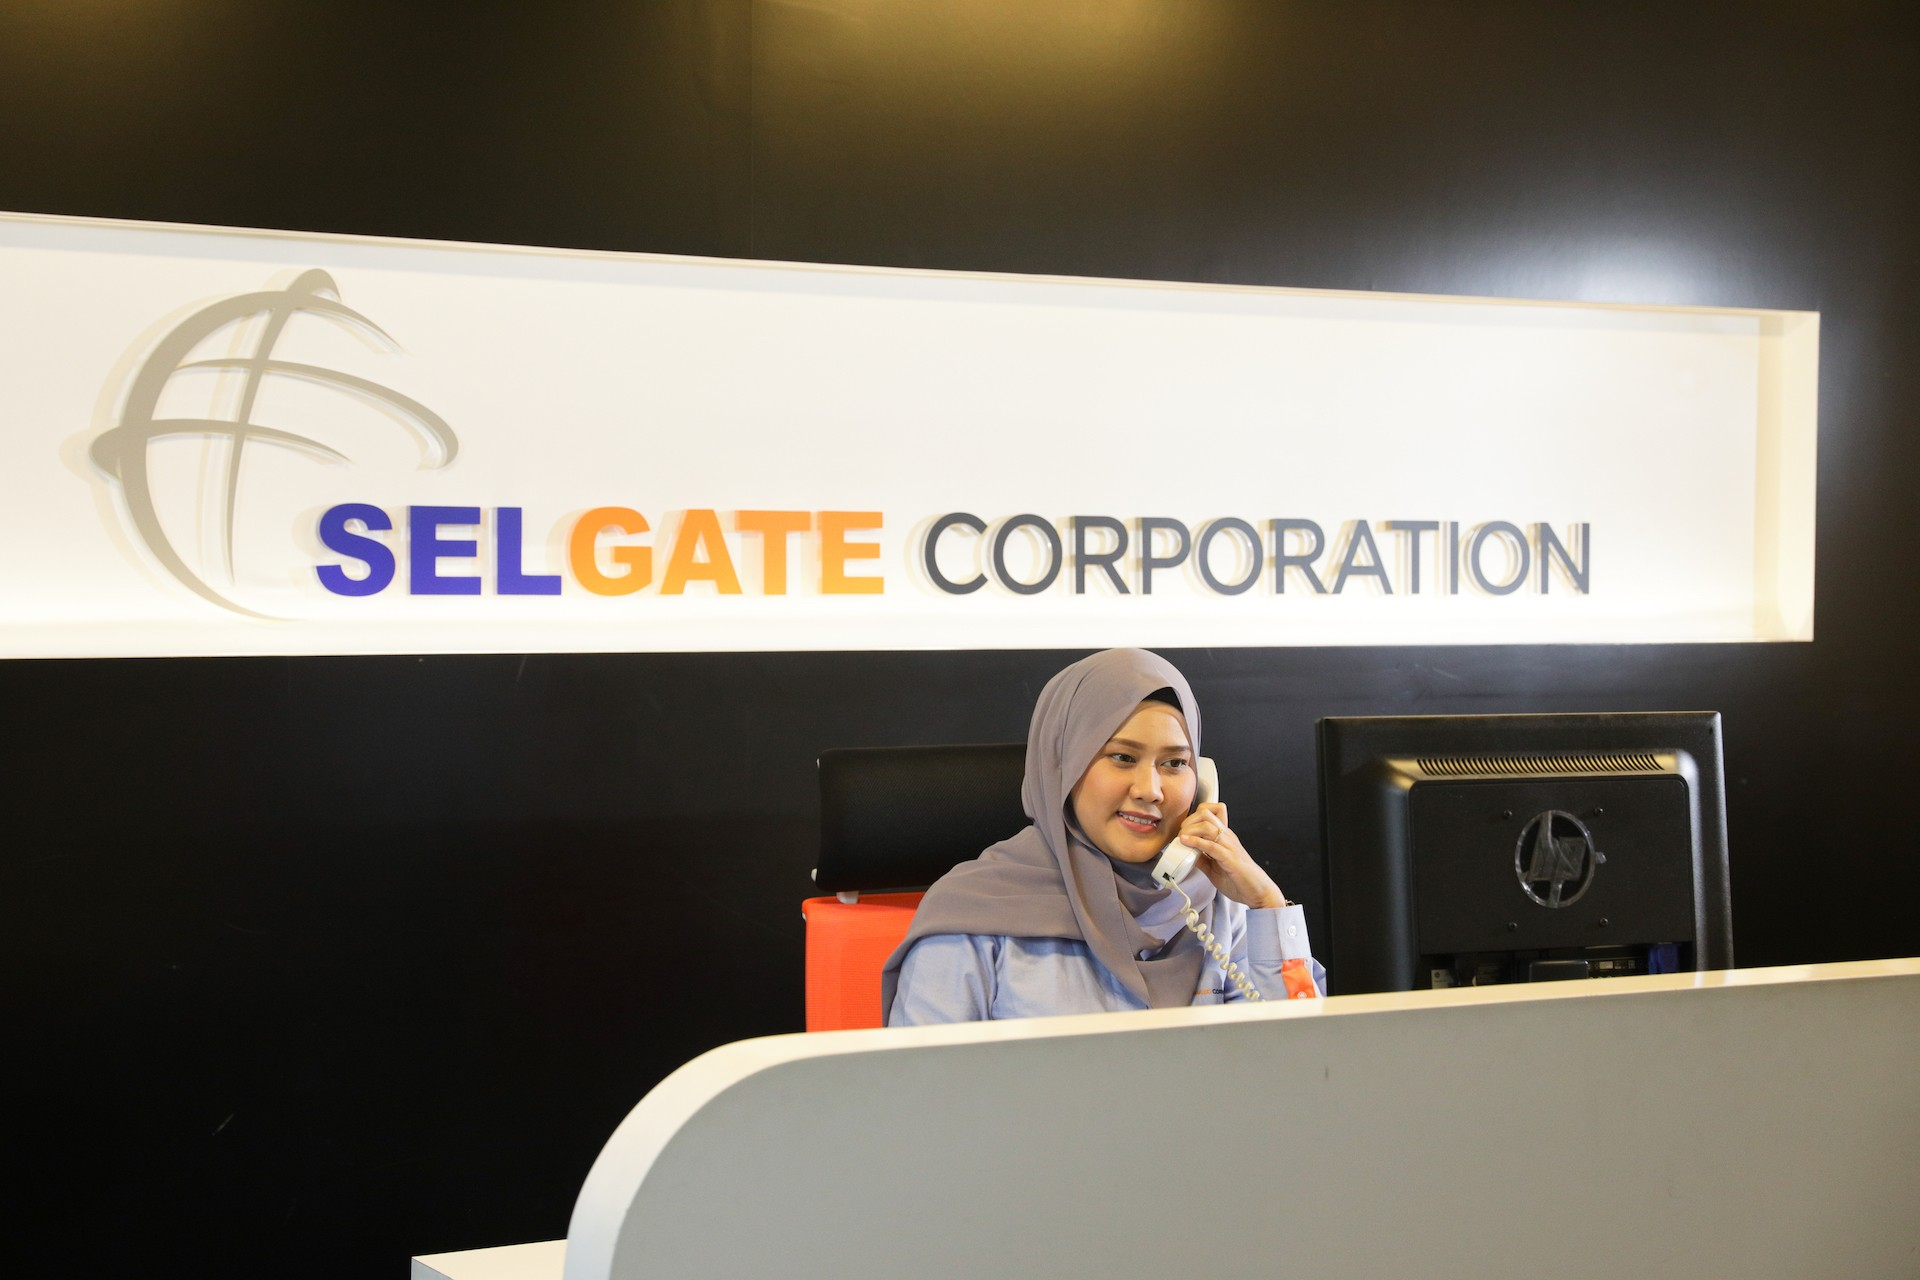 Customer Service Counters For Selangor Industry Vaccine Programme (SELVAX) Now Open